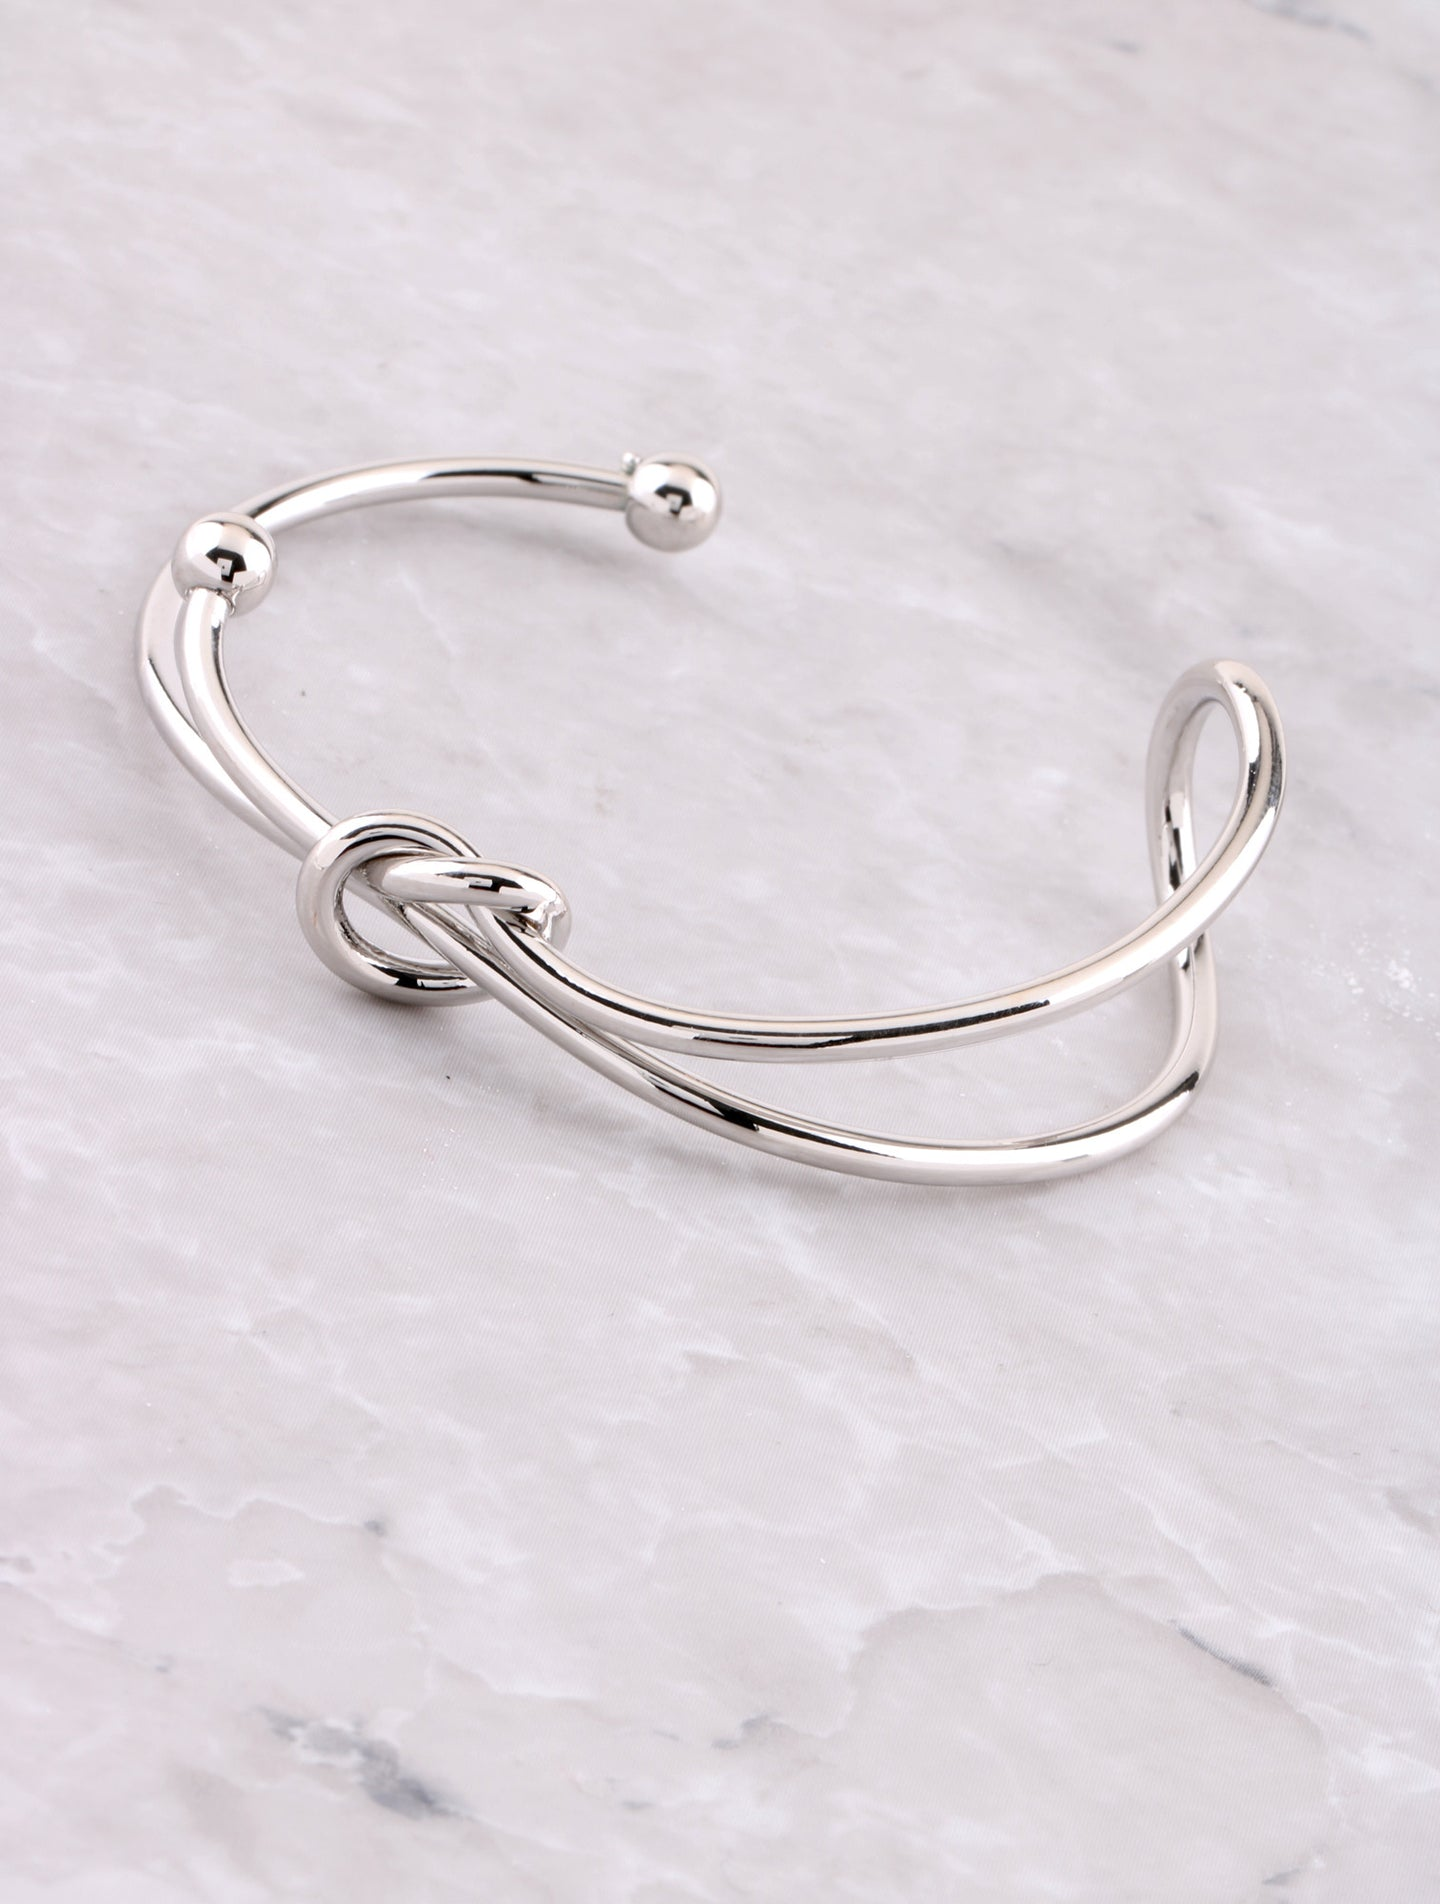 Tied Up Cuff Bracelet Anarchy Street Silver